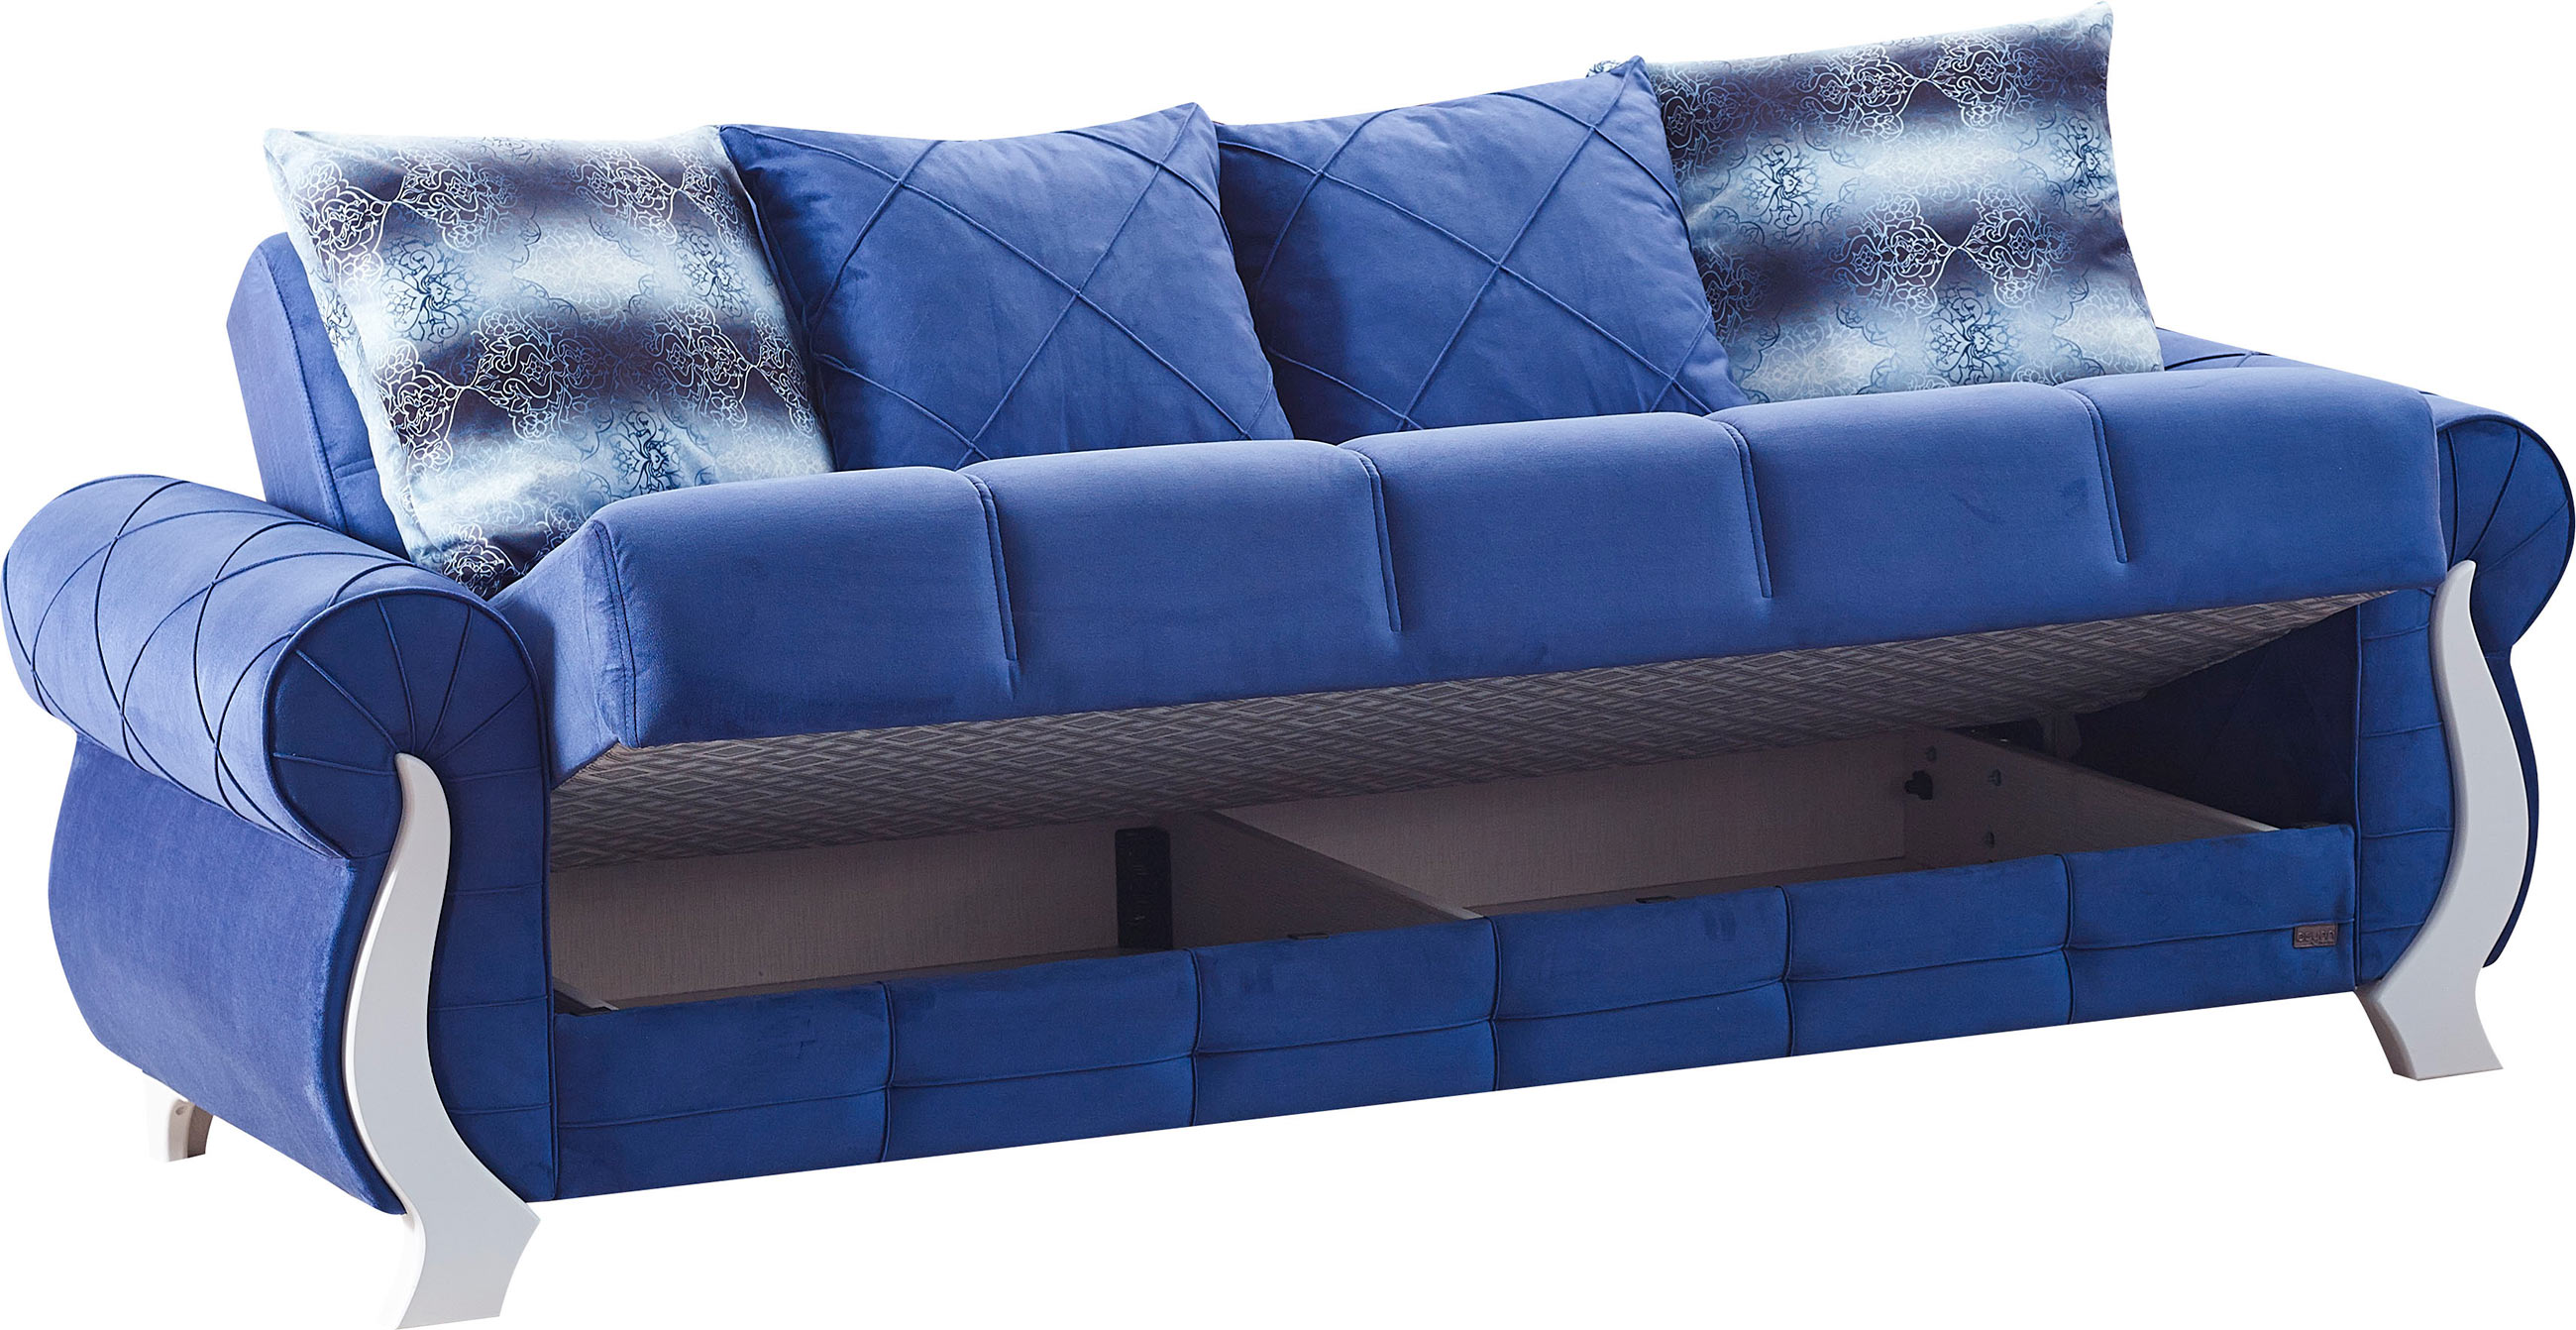 Montreal Blue Fabric Sofa Bed By Empire